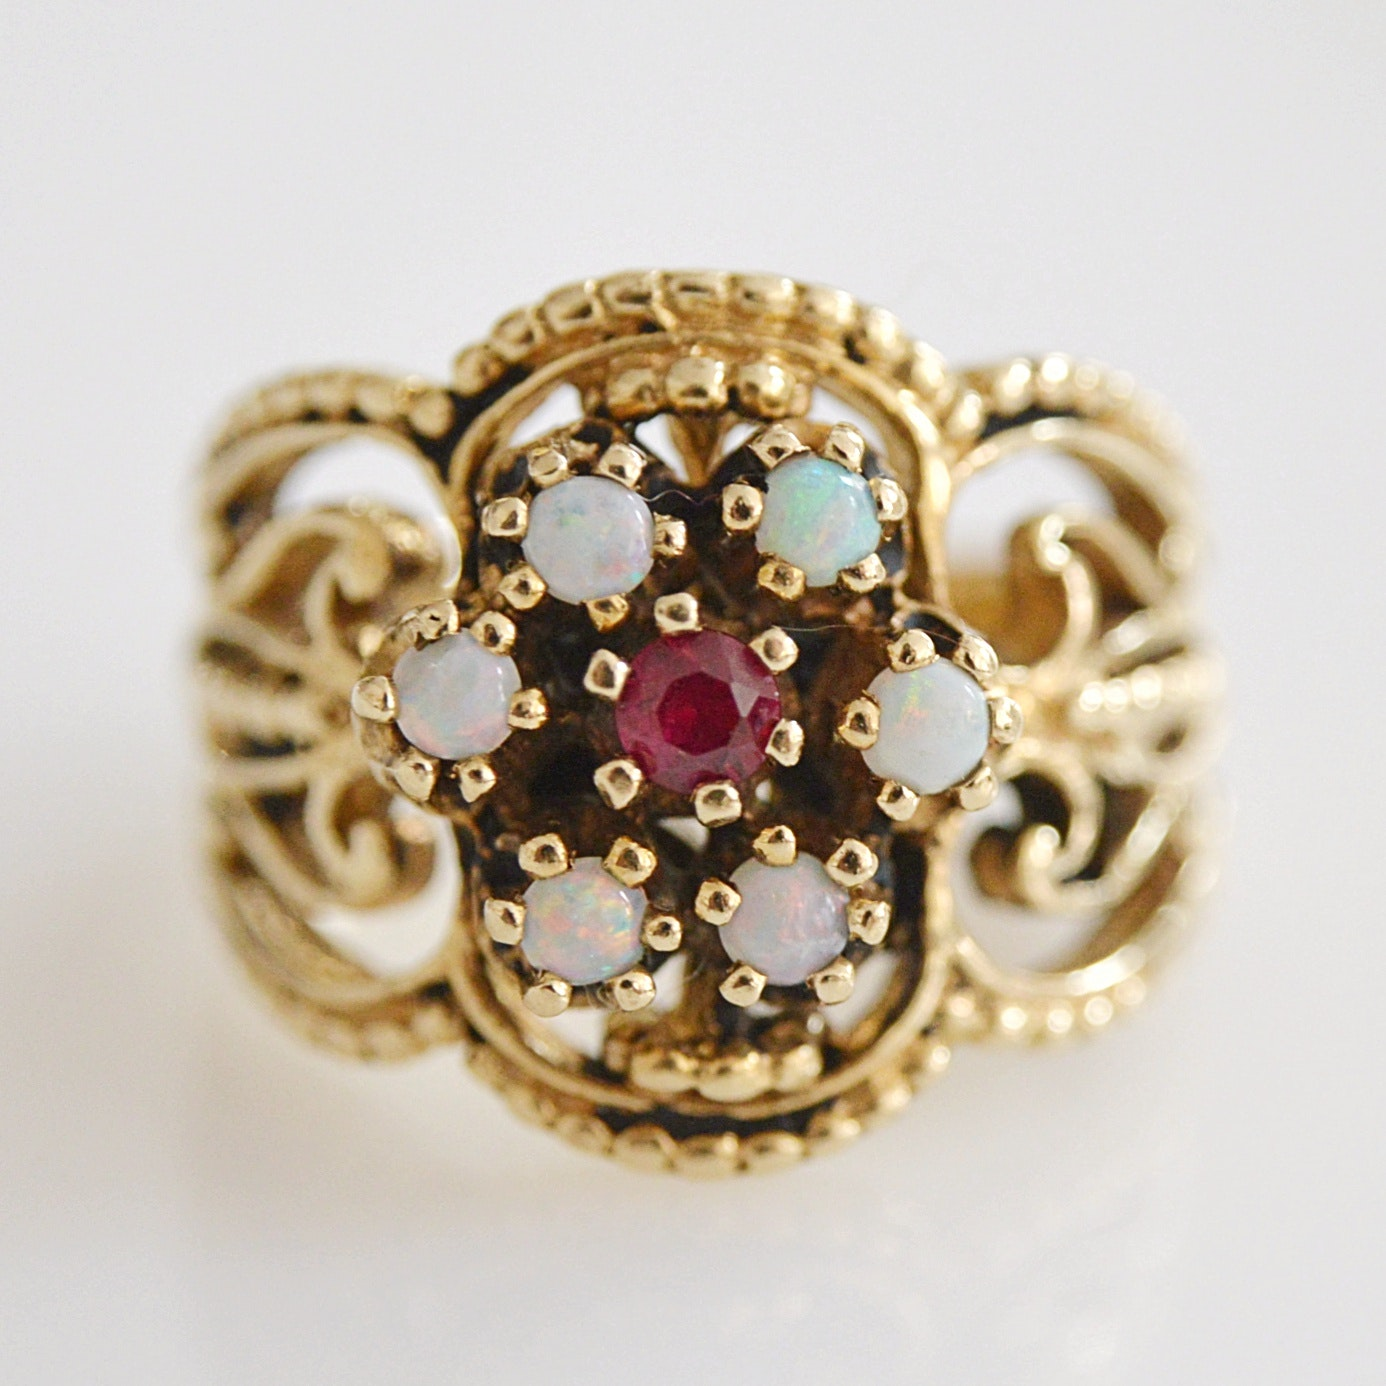 14K Gold, Ruby and Opal Ring